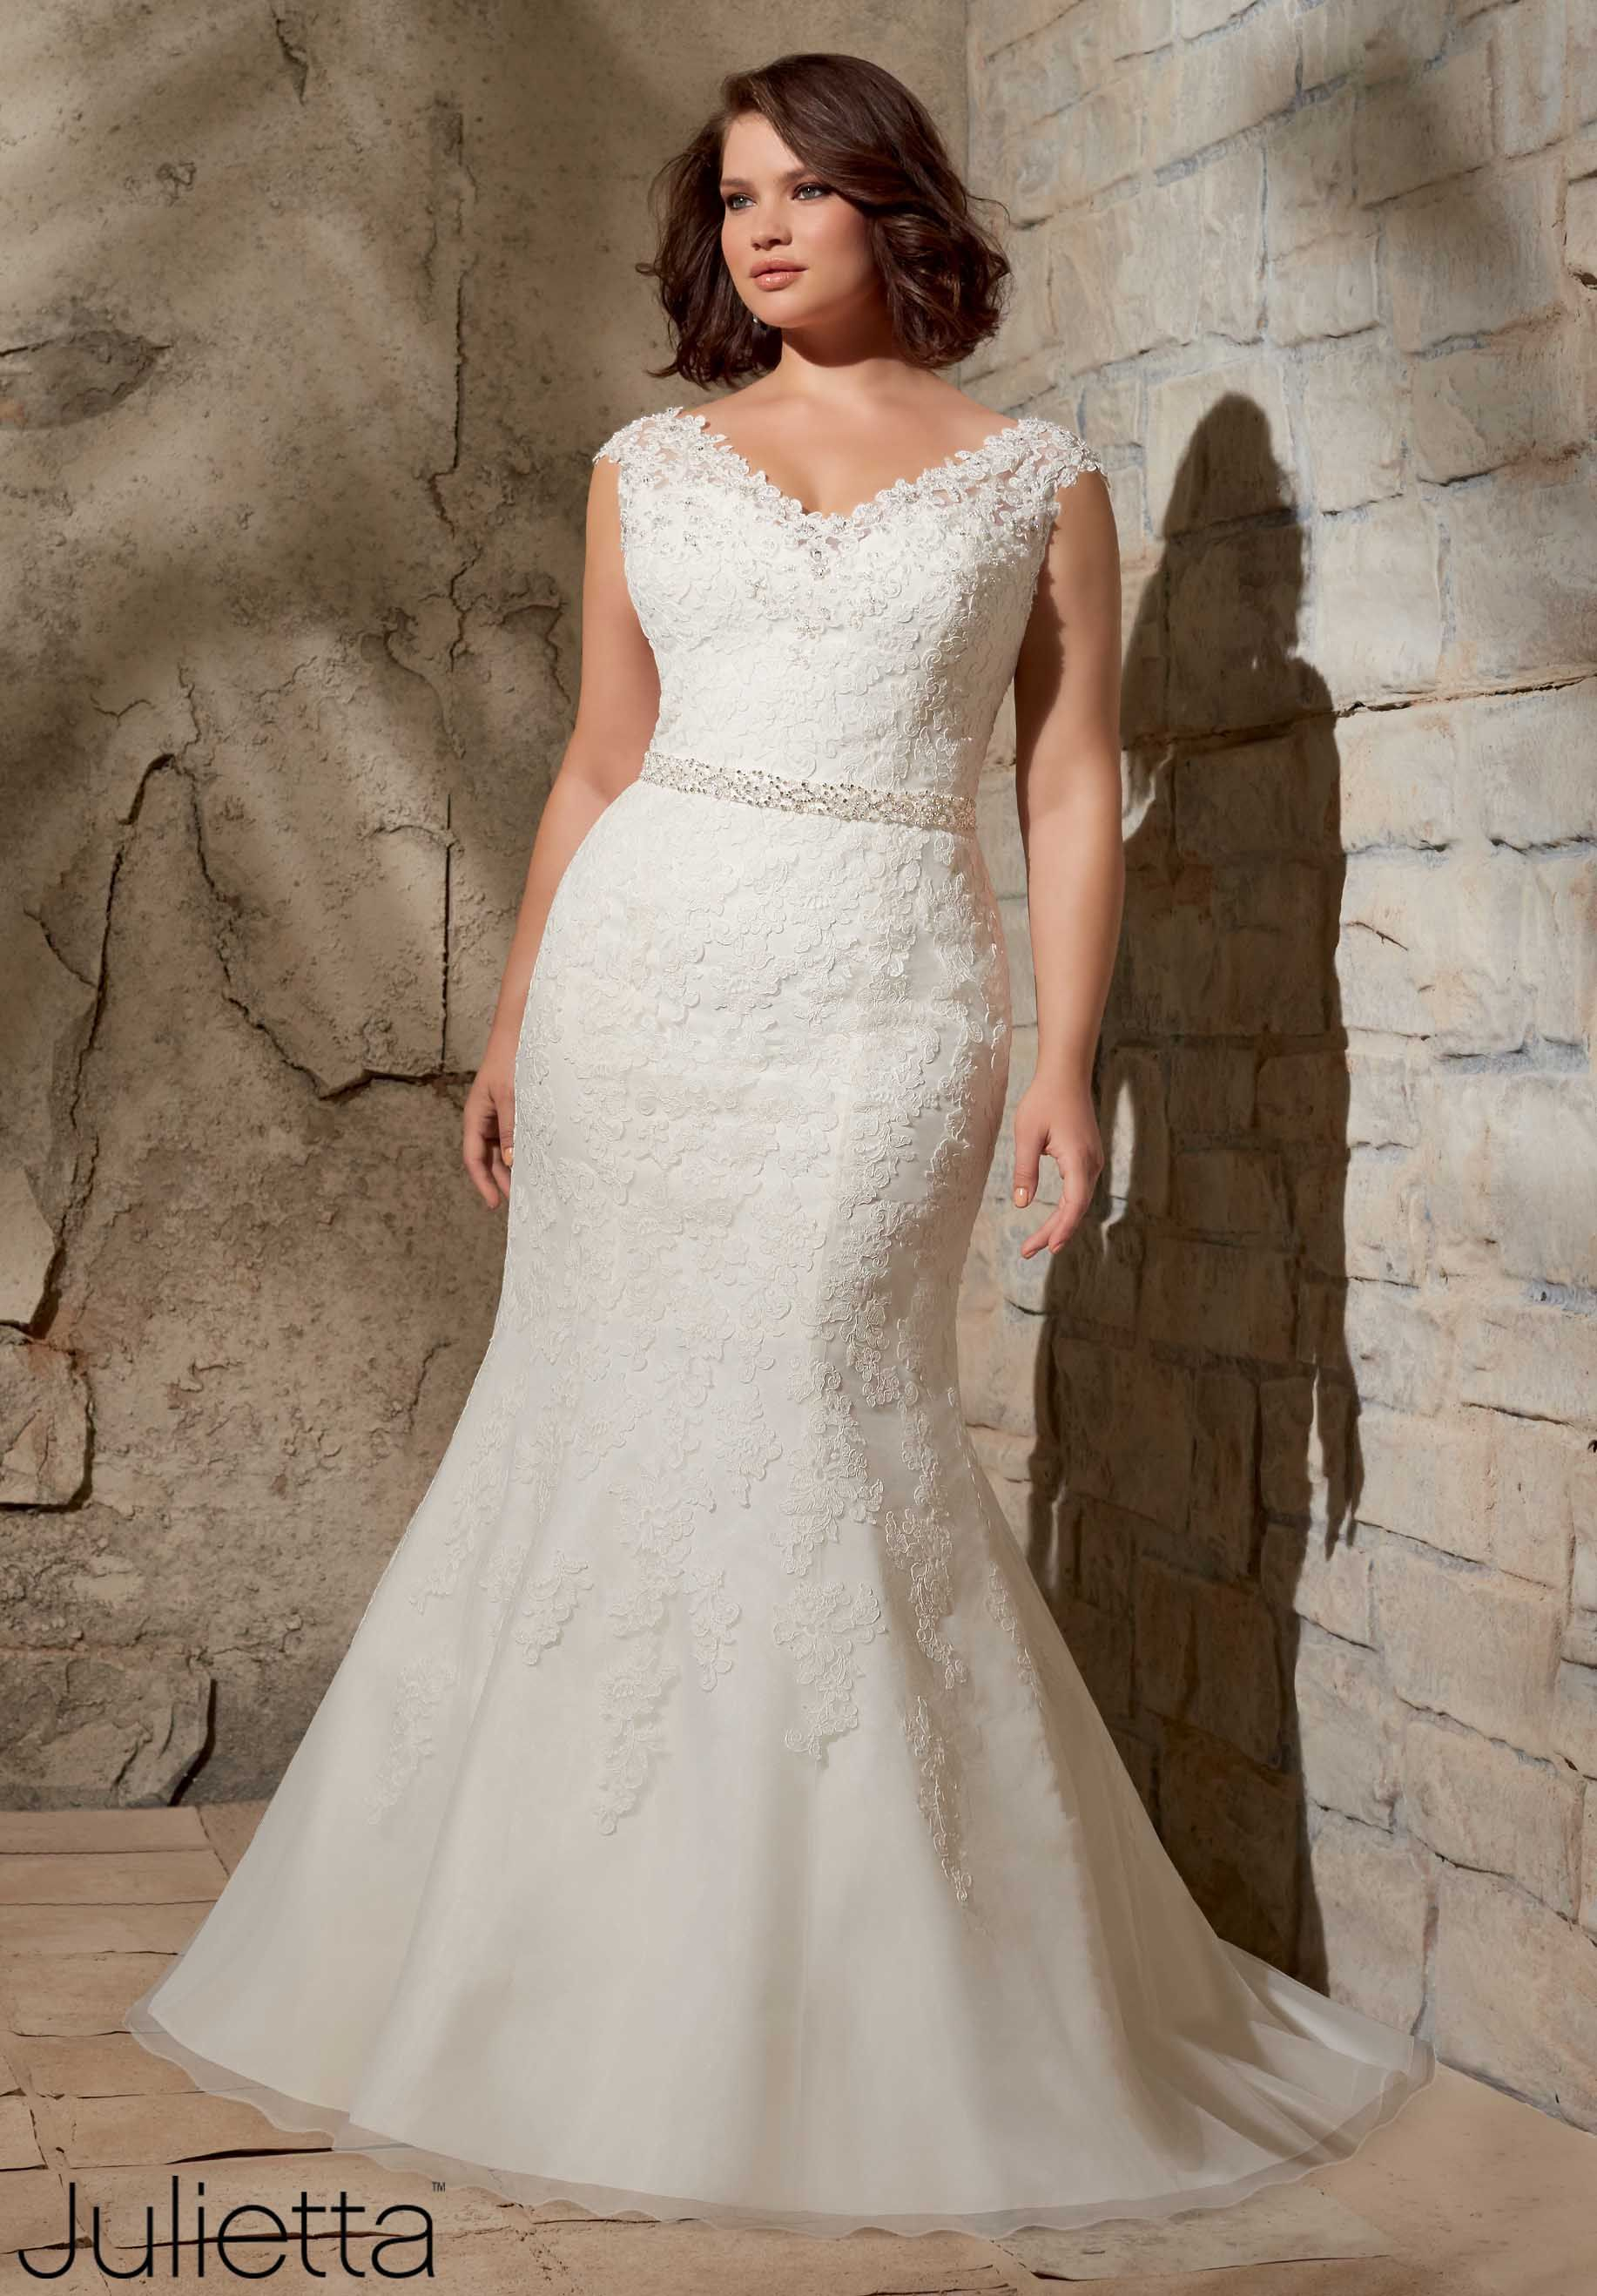 Wedding Gowns By Julietta Featuring Alencon Lace Appliques On Net With  Crystal Beading  Removable Beaded